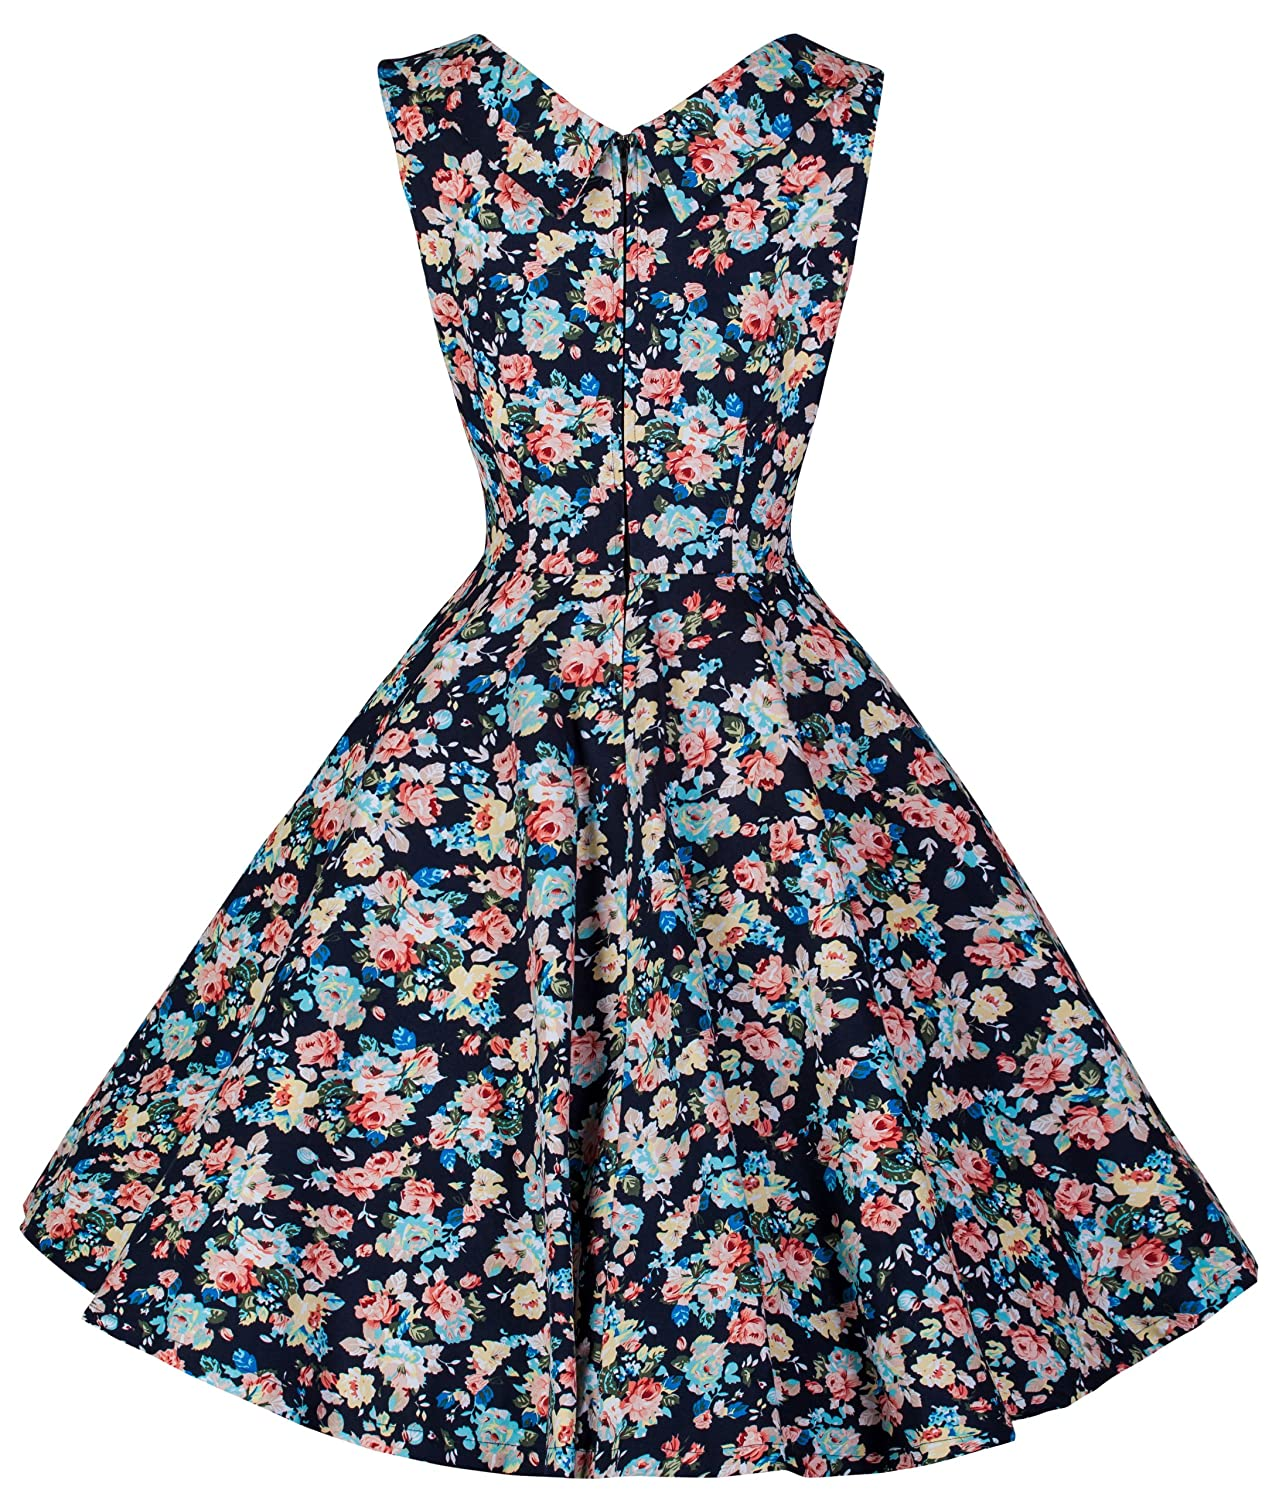 Lindy Bop Ophelia Vintage 1950s Dark Blue Floral Spring Garden Party Picnic Dress (XL, Dark Blue Floral) at Amazon Womens Clothing store: